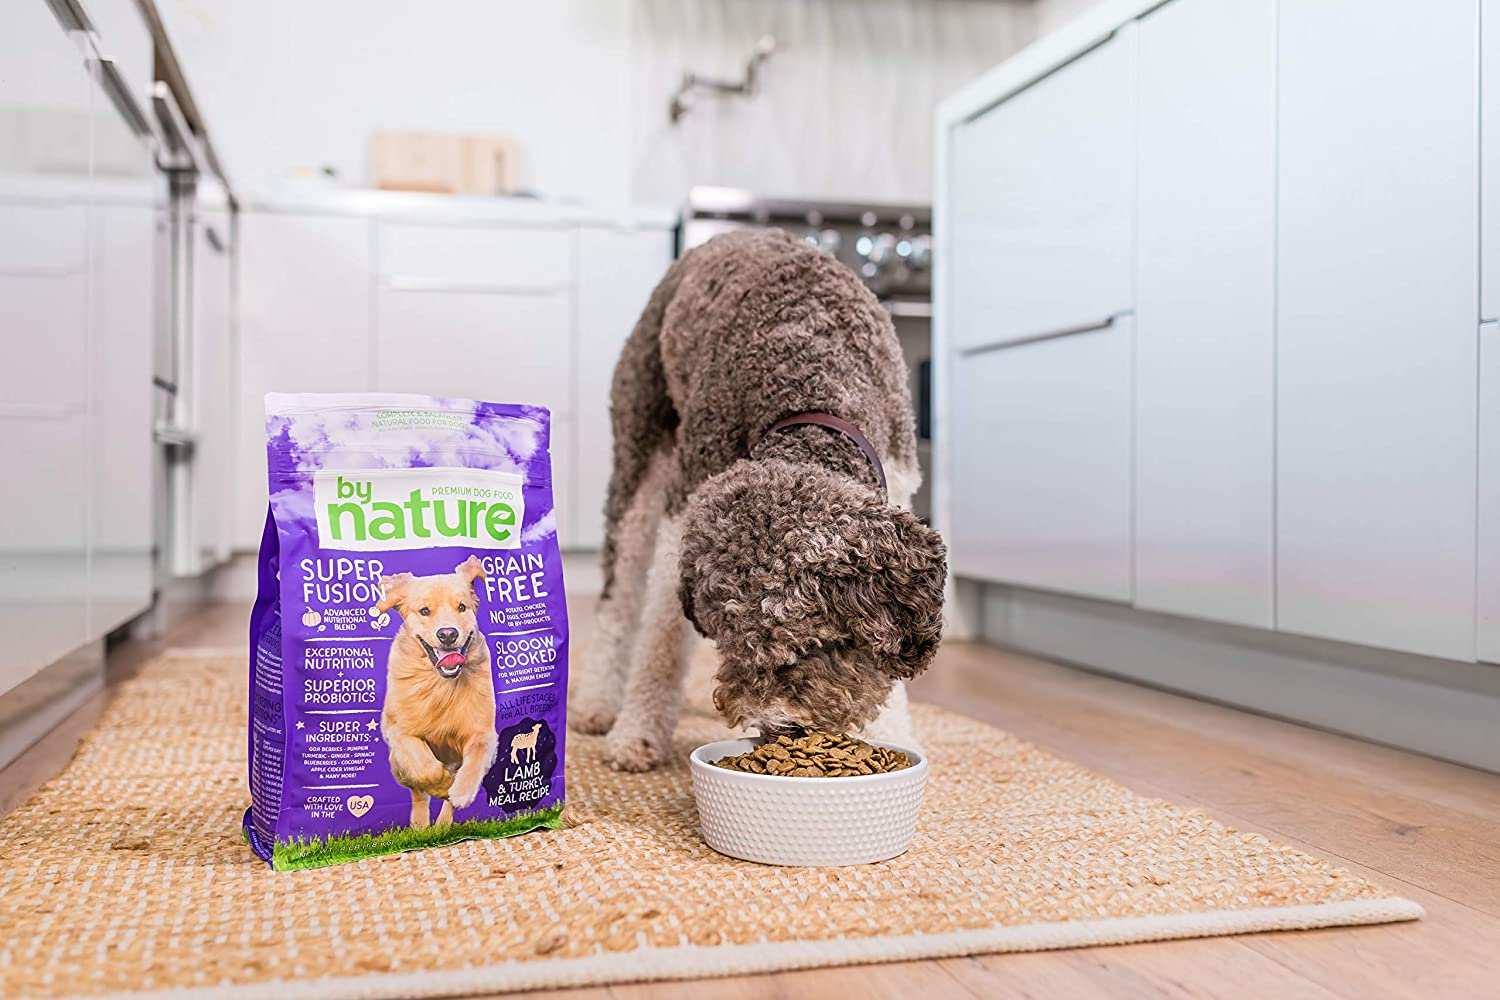 An Organic Pet Food Option By Nature Review